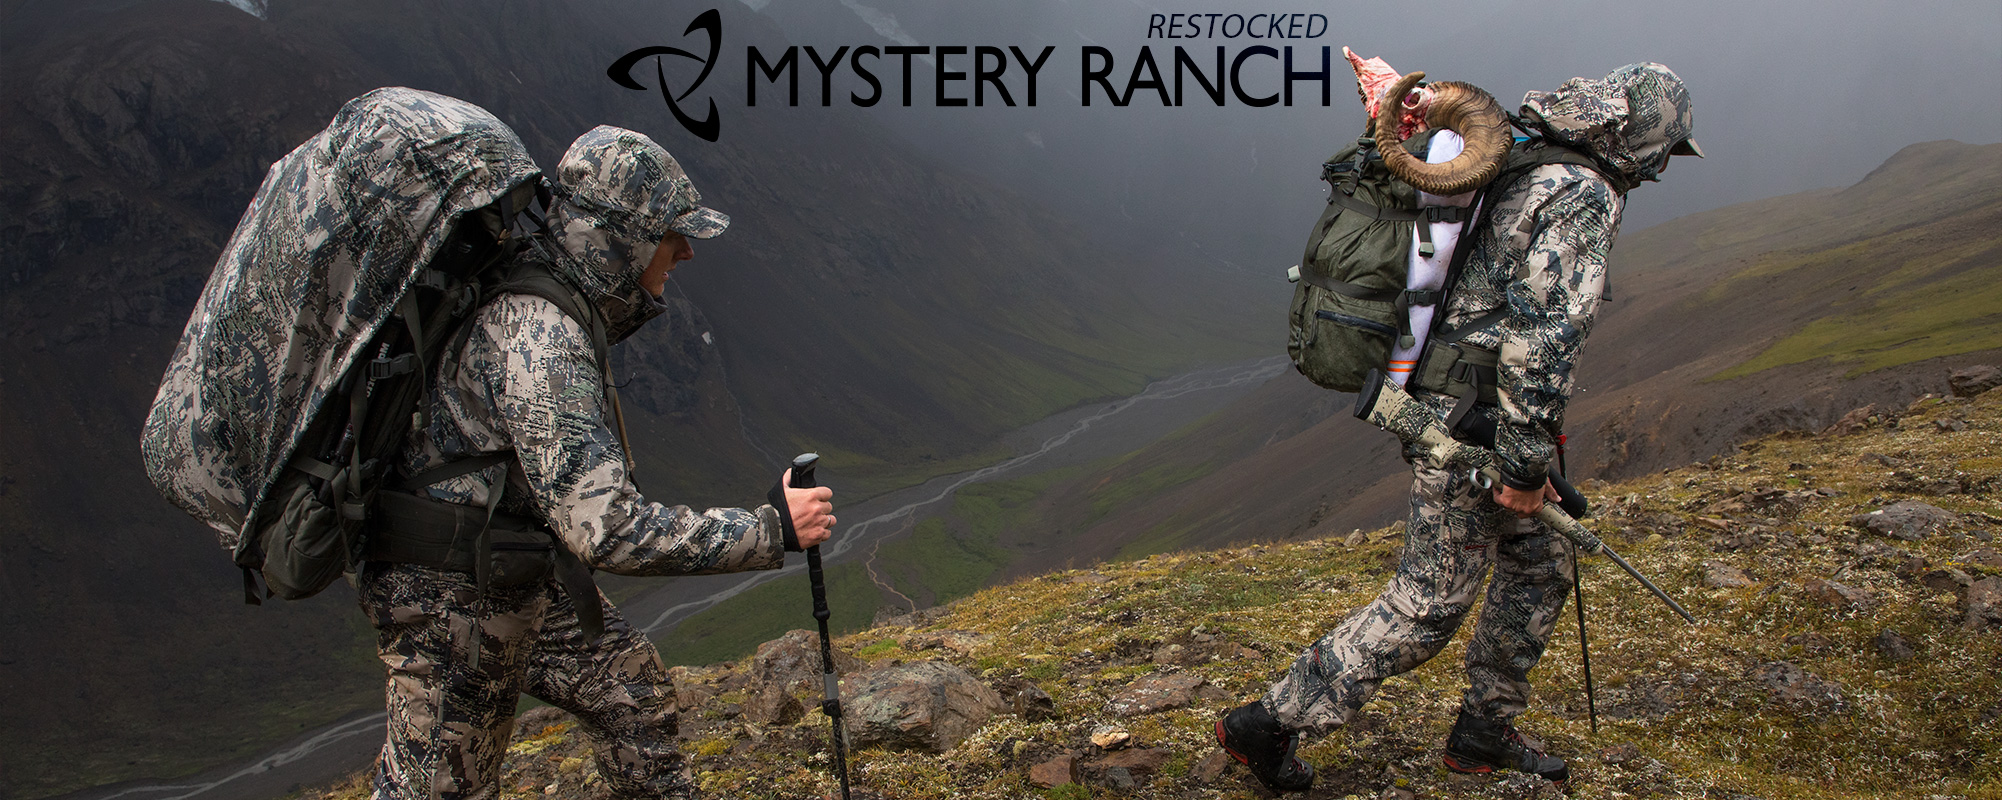 Shop Mystery Ranch